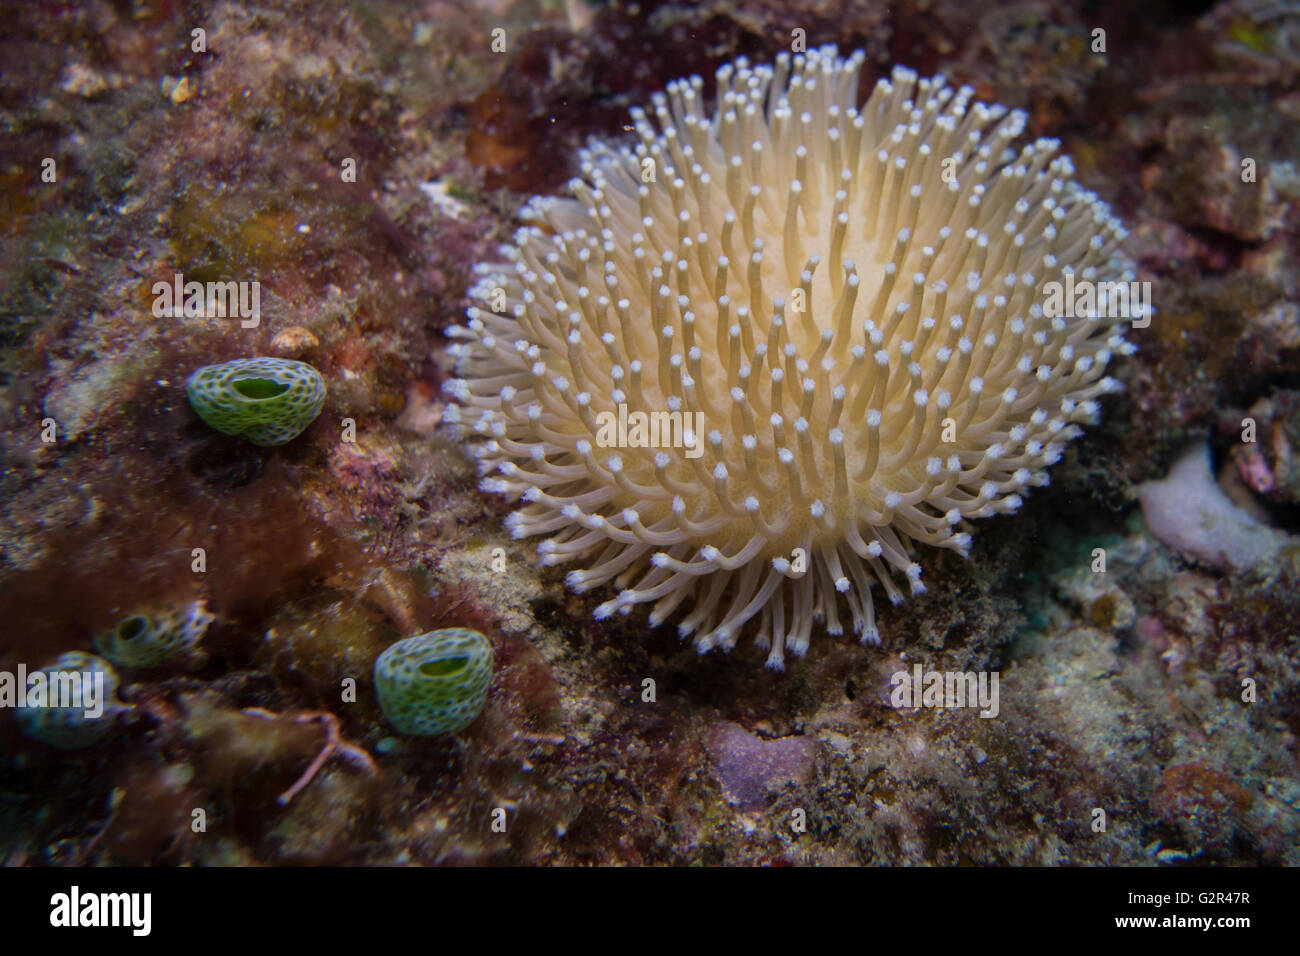 Long polyp leather coral, Sarcophyton sp., from the Coral Triangle, Brunei Darussalam, South China Sea. - Stock Image